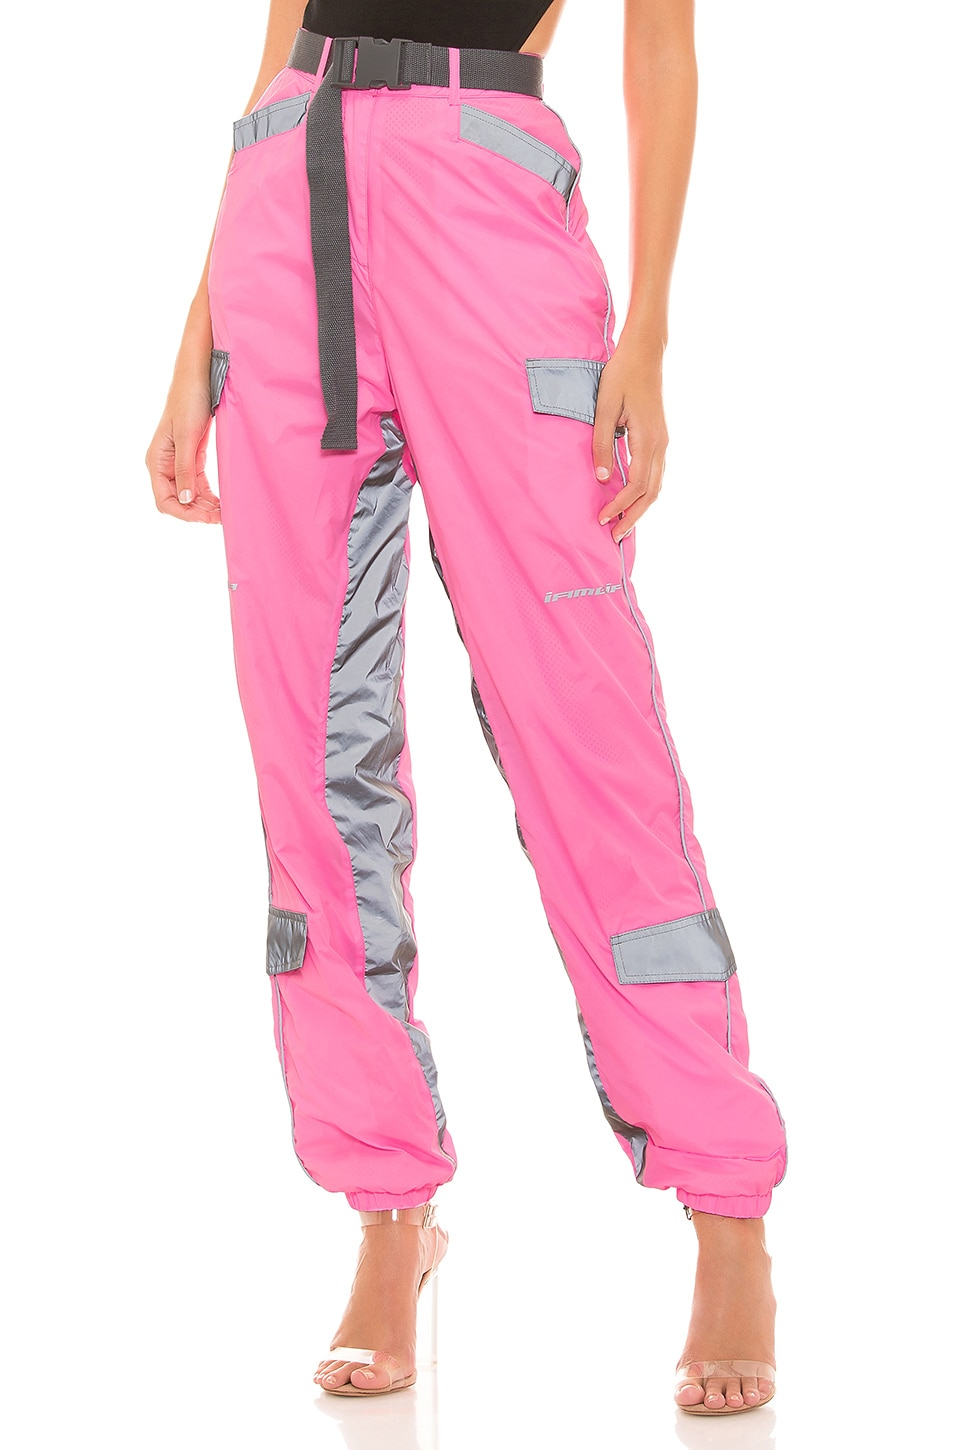 I.AM.GIA Neptune Pant in Neon Pink